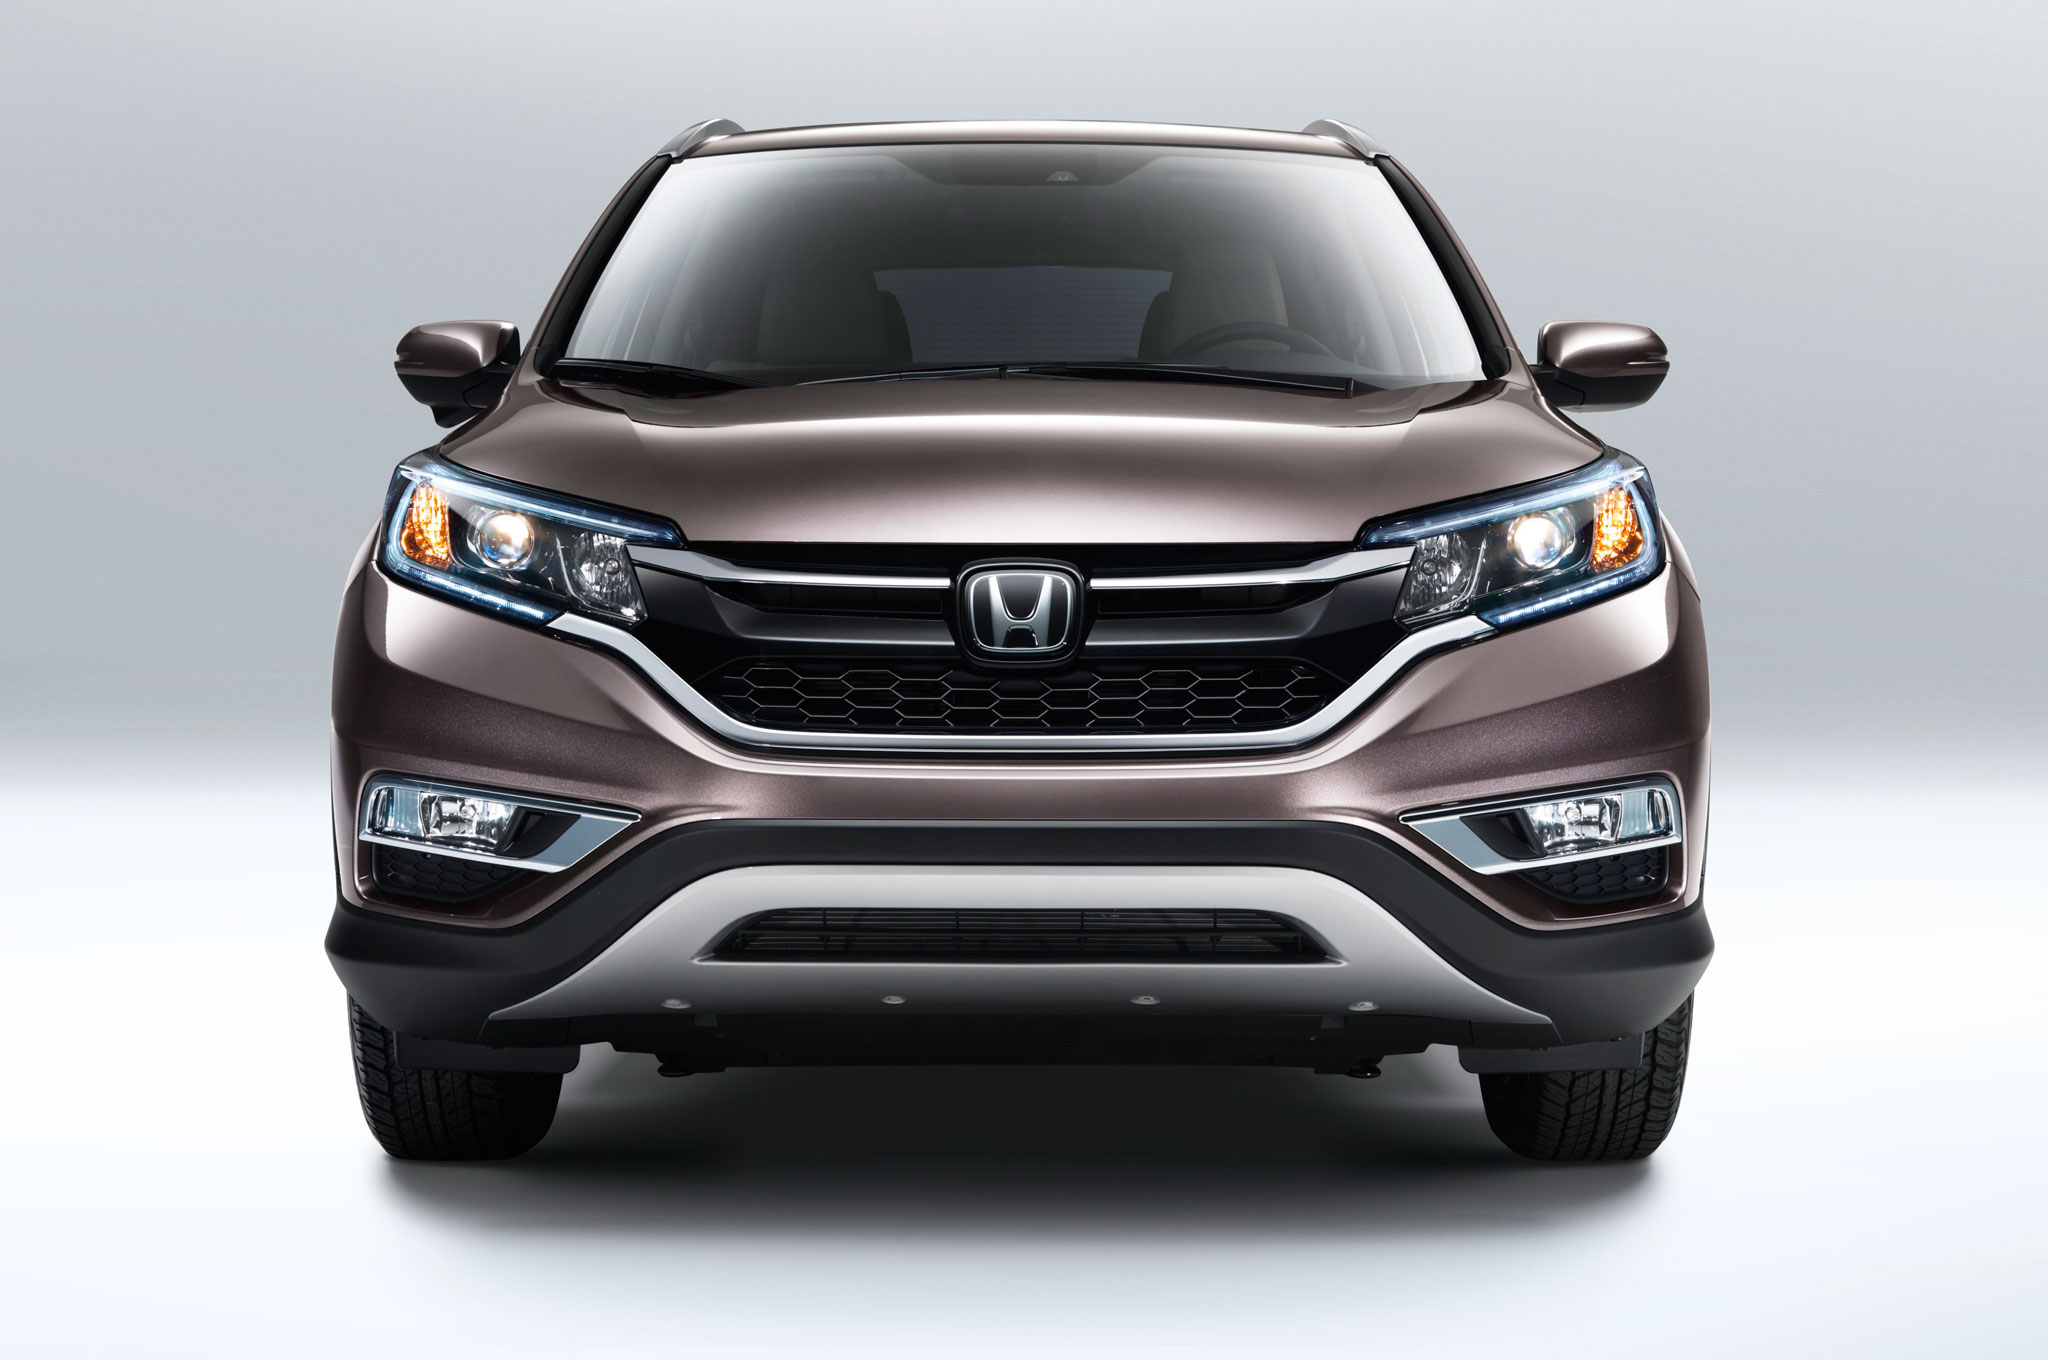 2015 honda cr v refreshed with new engine improved mpg for 2015 honda crv price